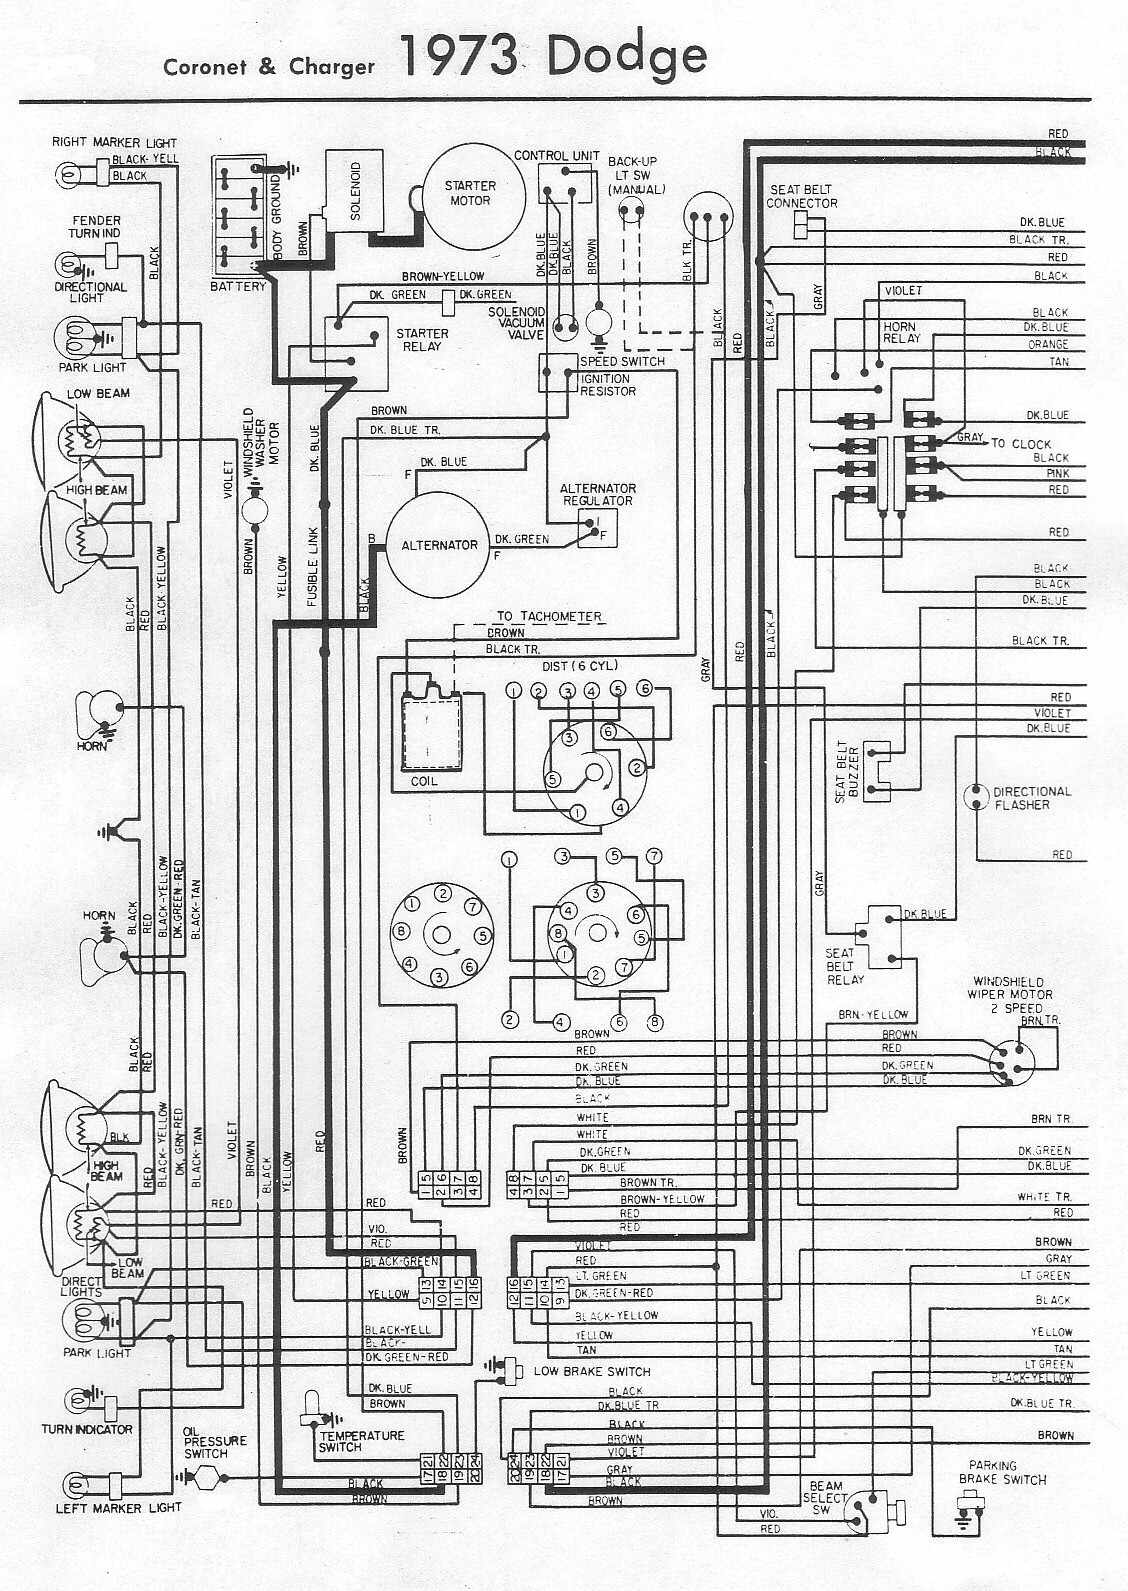 electrical wiring diagram of 1973 dodge coronet and charger?t\=1508404771 1973 dodge dart wiring diagram 1973 dodge dart instrument panel 1978 Dodge Power Wagon at crackthecode.co